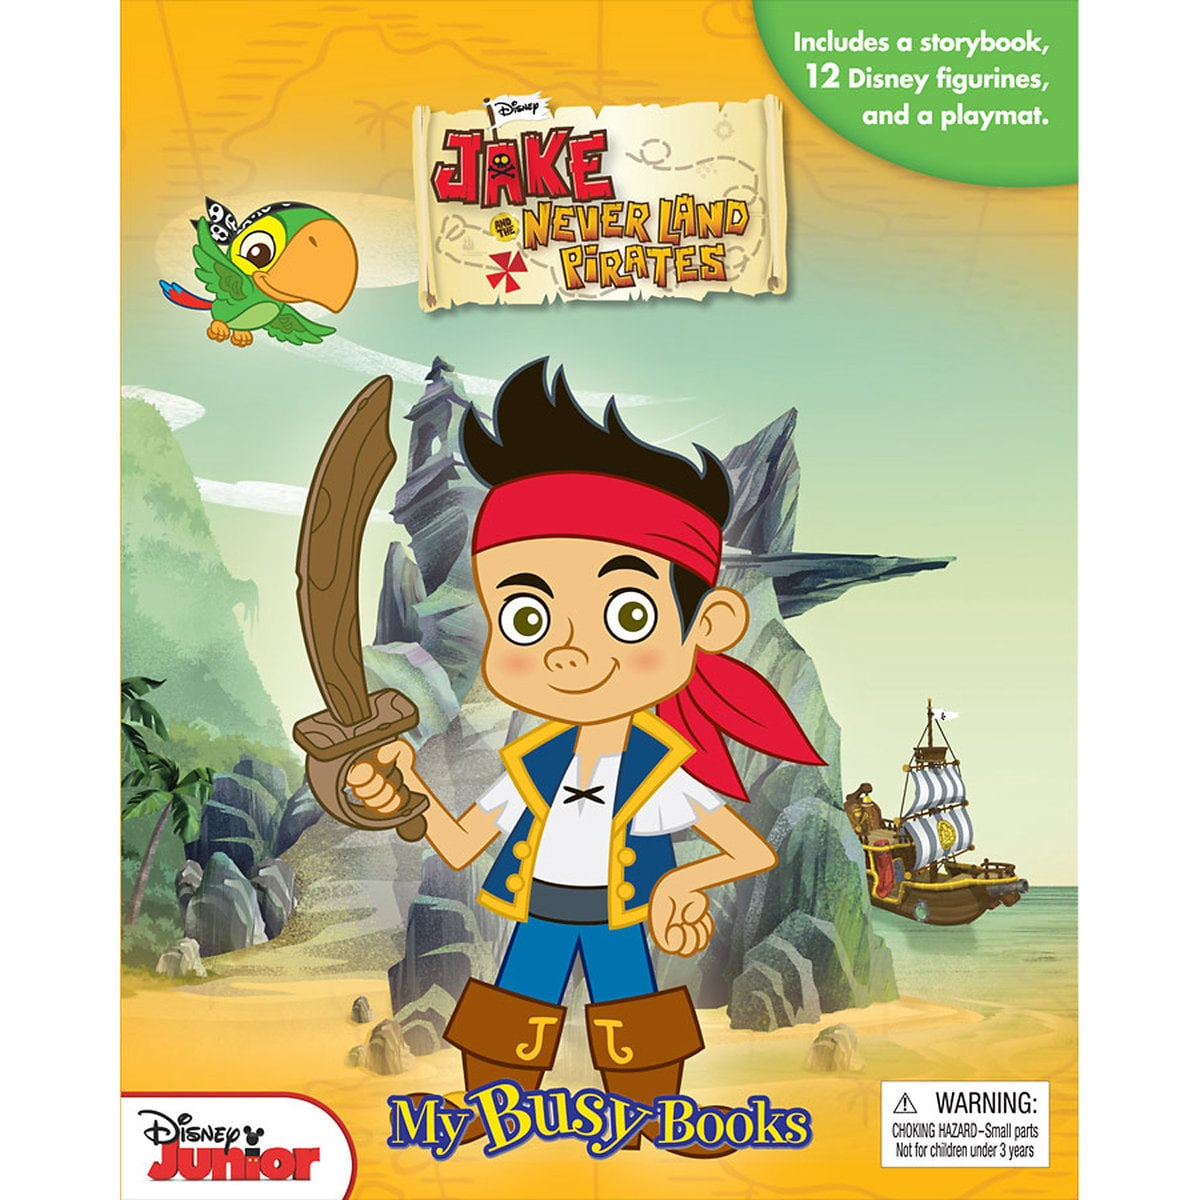 Jake and the Never Land Pirates - My Busy Books | shopDisney